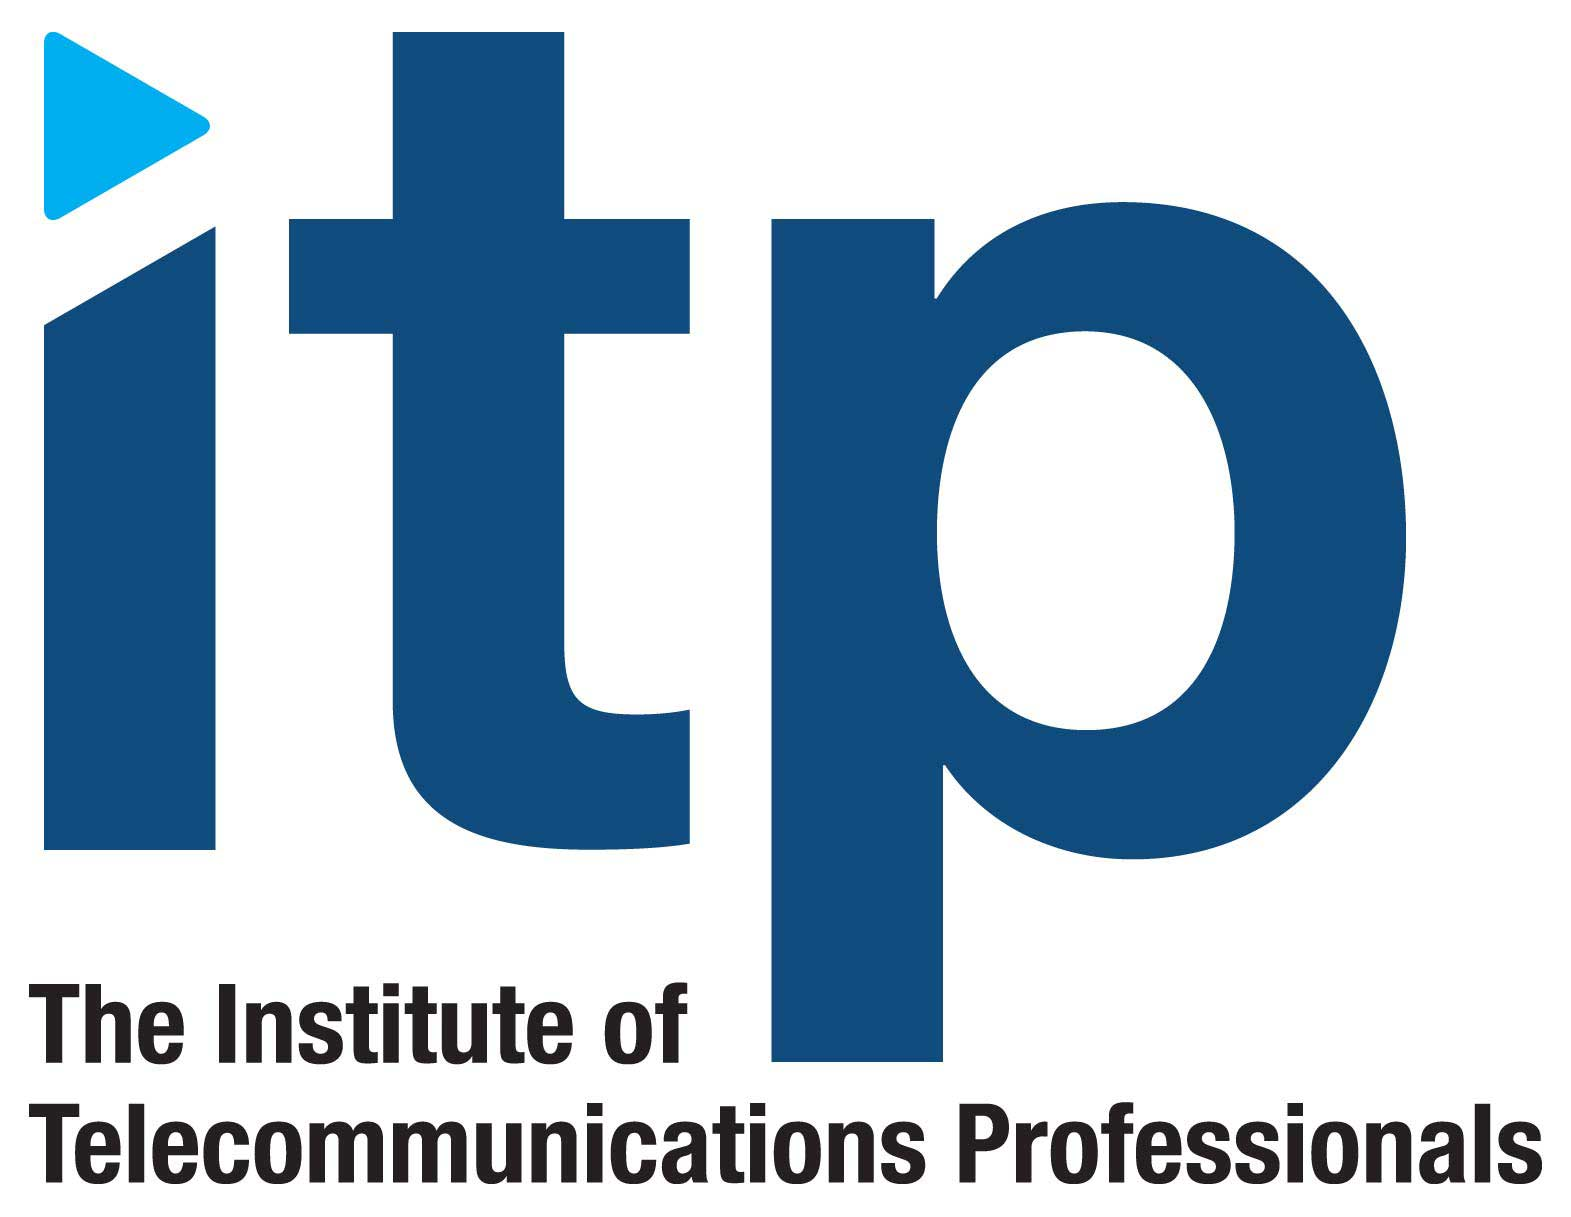 The Institute of Telecommunications Professionals (ITP)